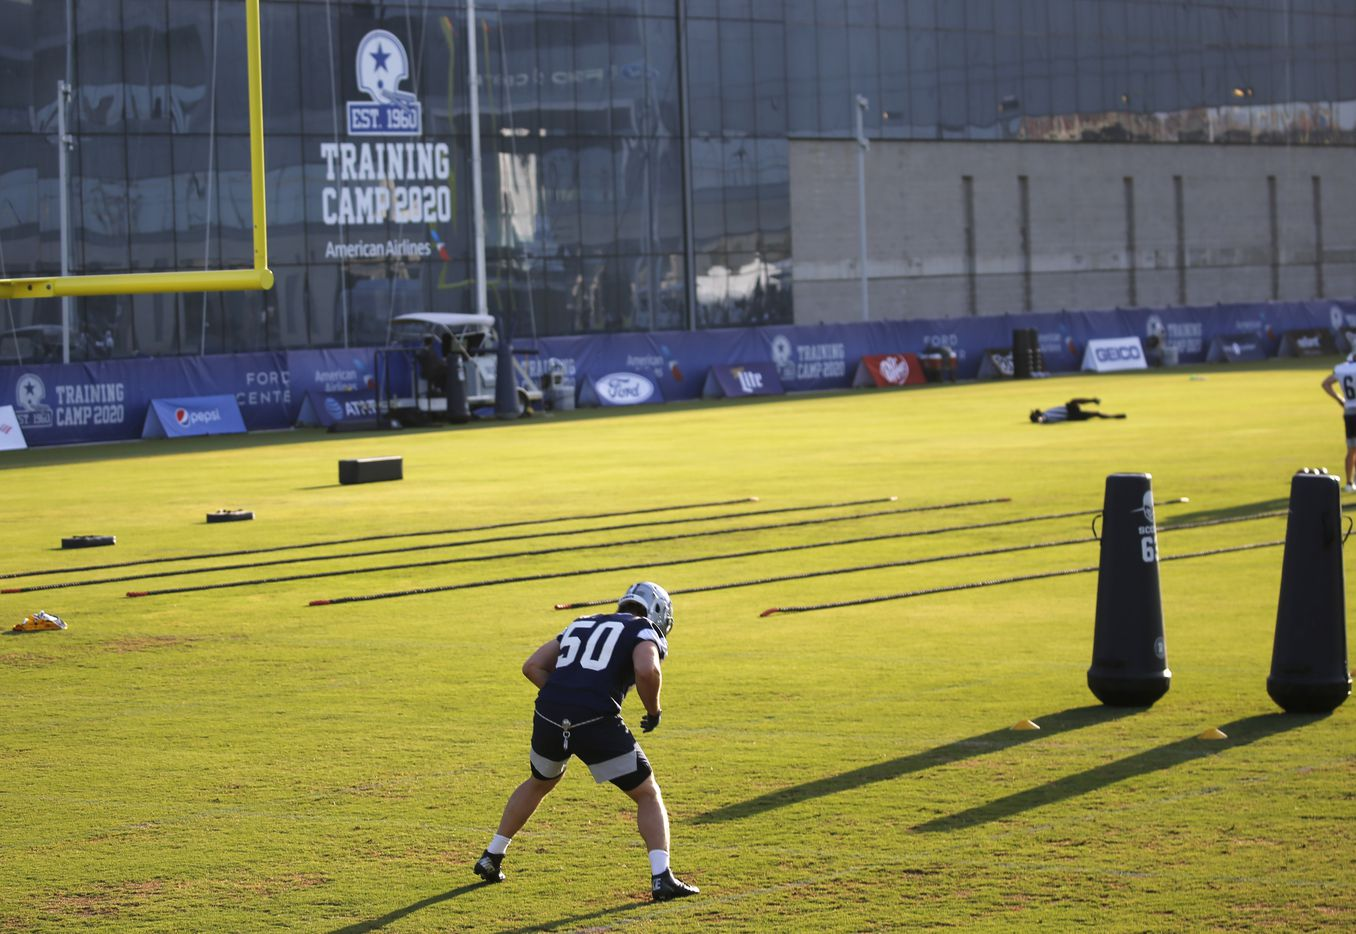 Dallas Cowboys linebacker Sean Lee (50) works out during the first day of training camp at Dallas Cowboys headquarters at The Star in Frisco, Texas on Friday, August 14, 2020. (Vernon Bryant/The Dallas Morning News)